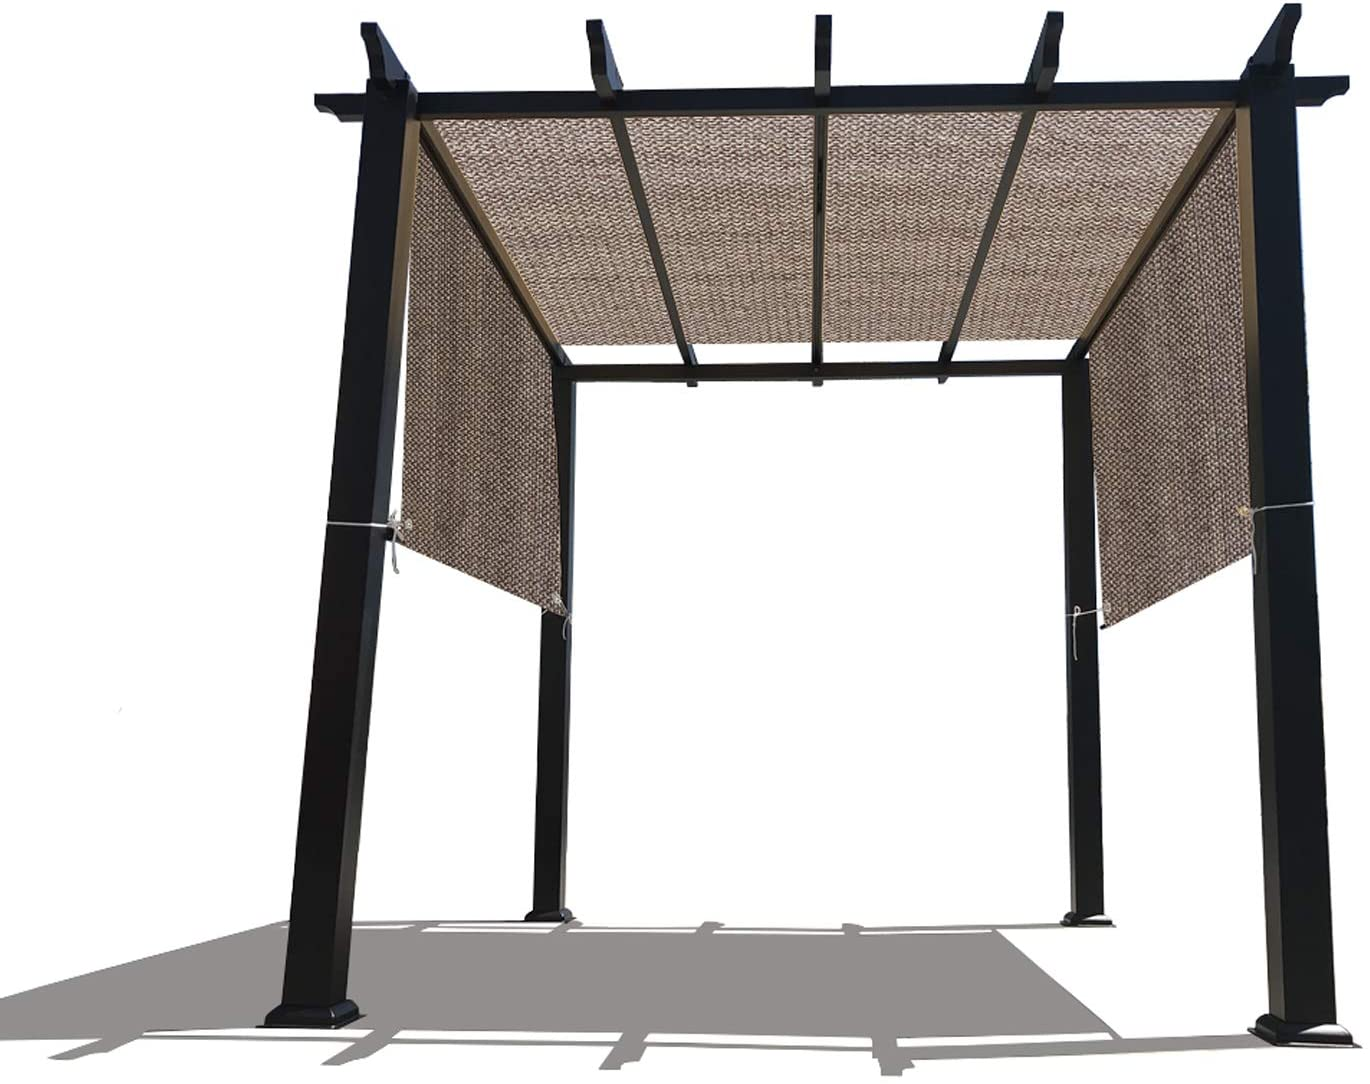 Alion Home Custom HDPE Permeable Canopy Sun Shade Cover Replacement with Rod Pockets for Pergola (14' x 9', Walnut)